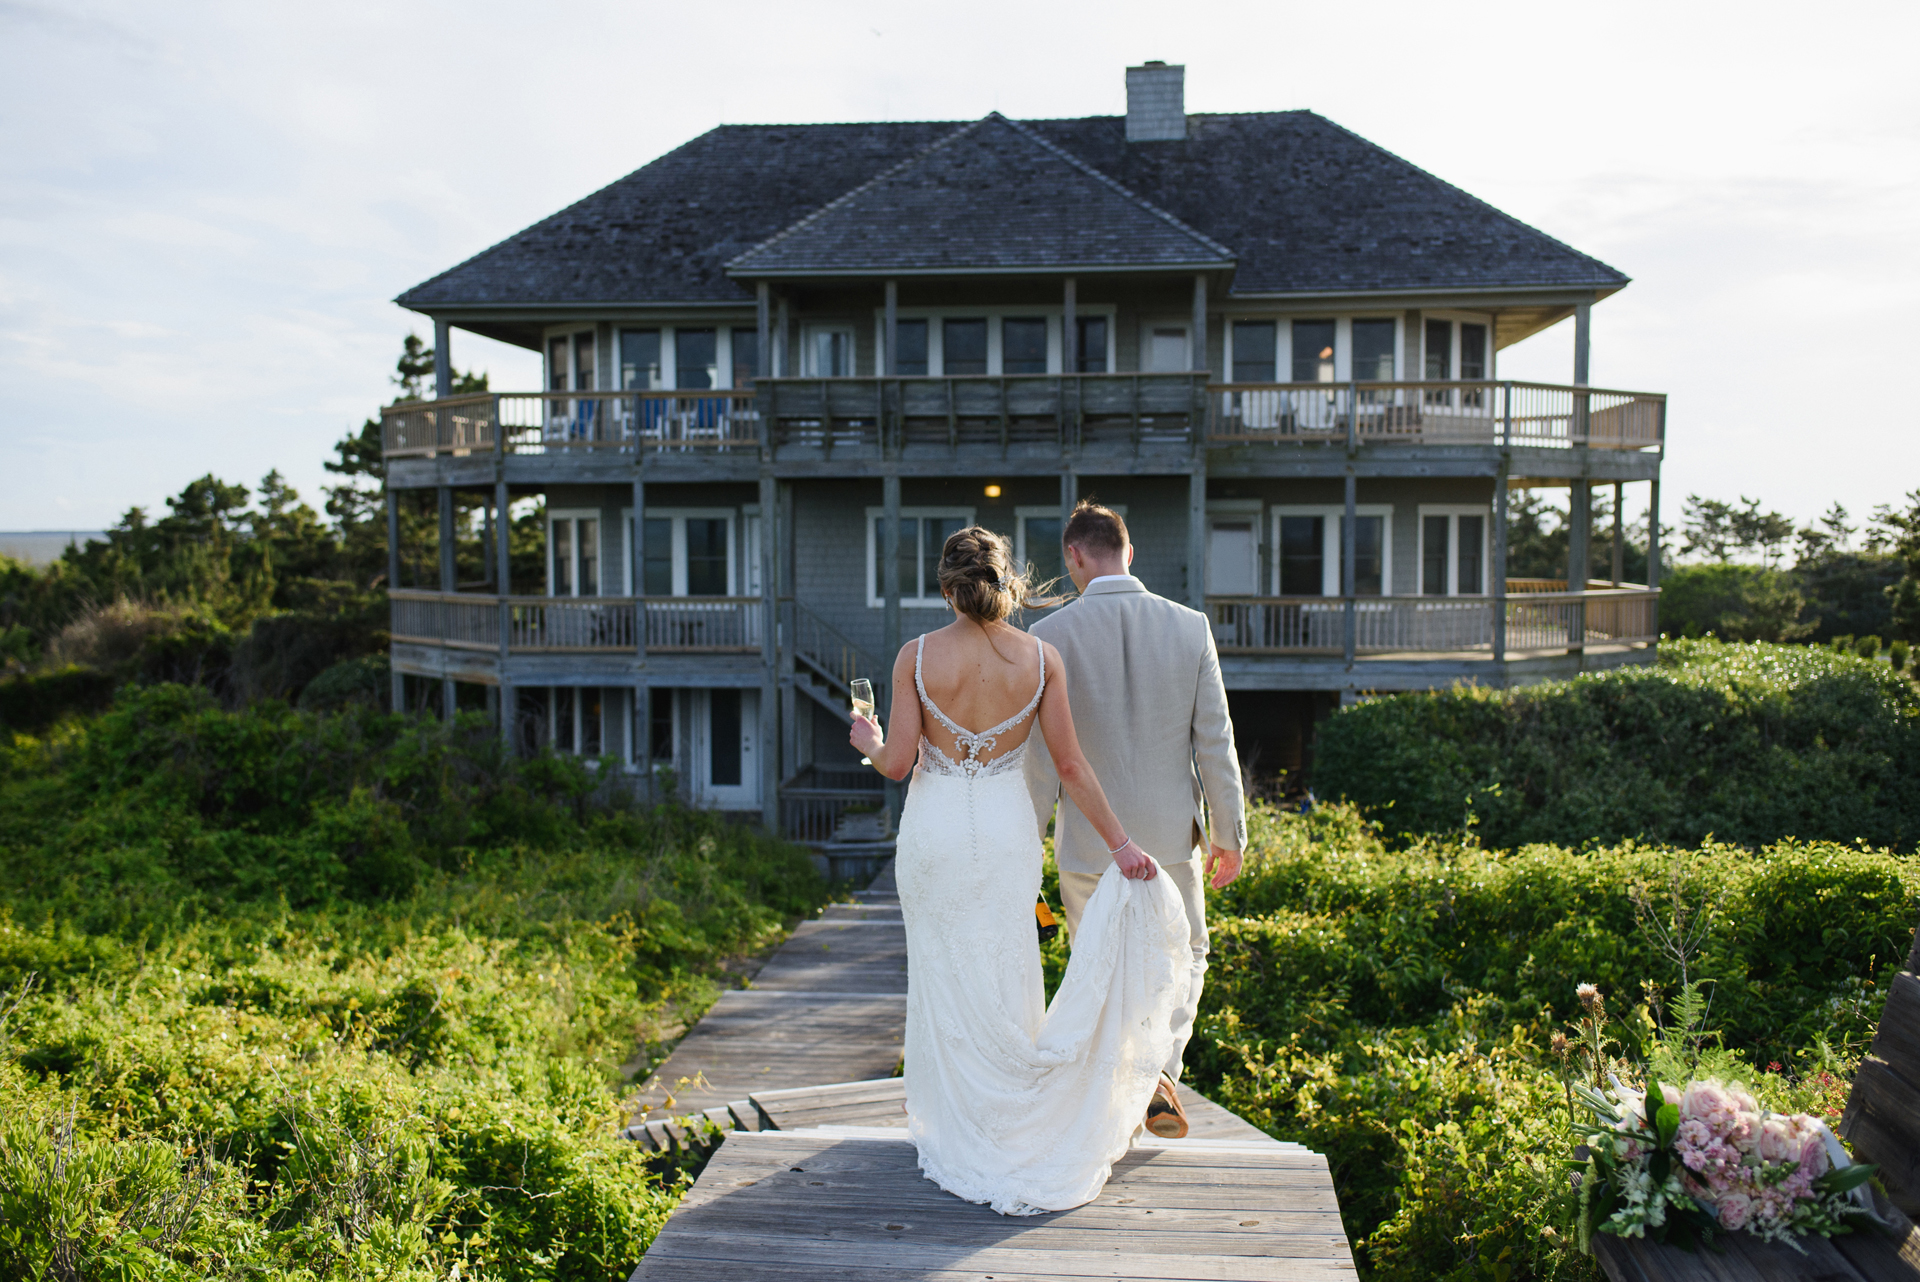 North Carolina Small Wedding Reception Picture | The bride and groom return to their small wedding reception at an oceanfront home